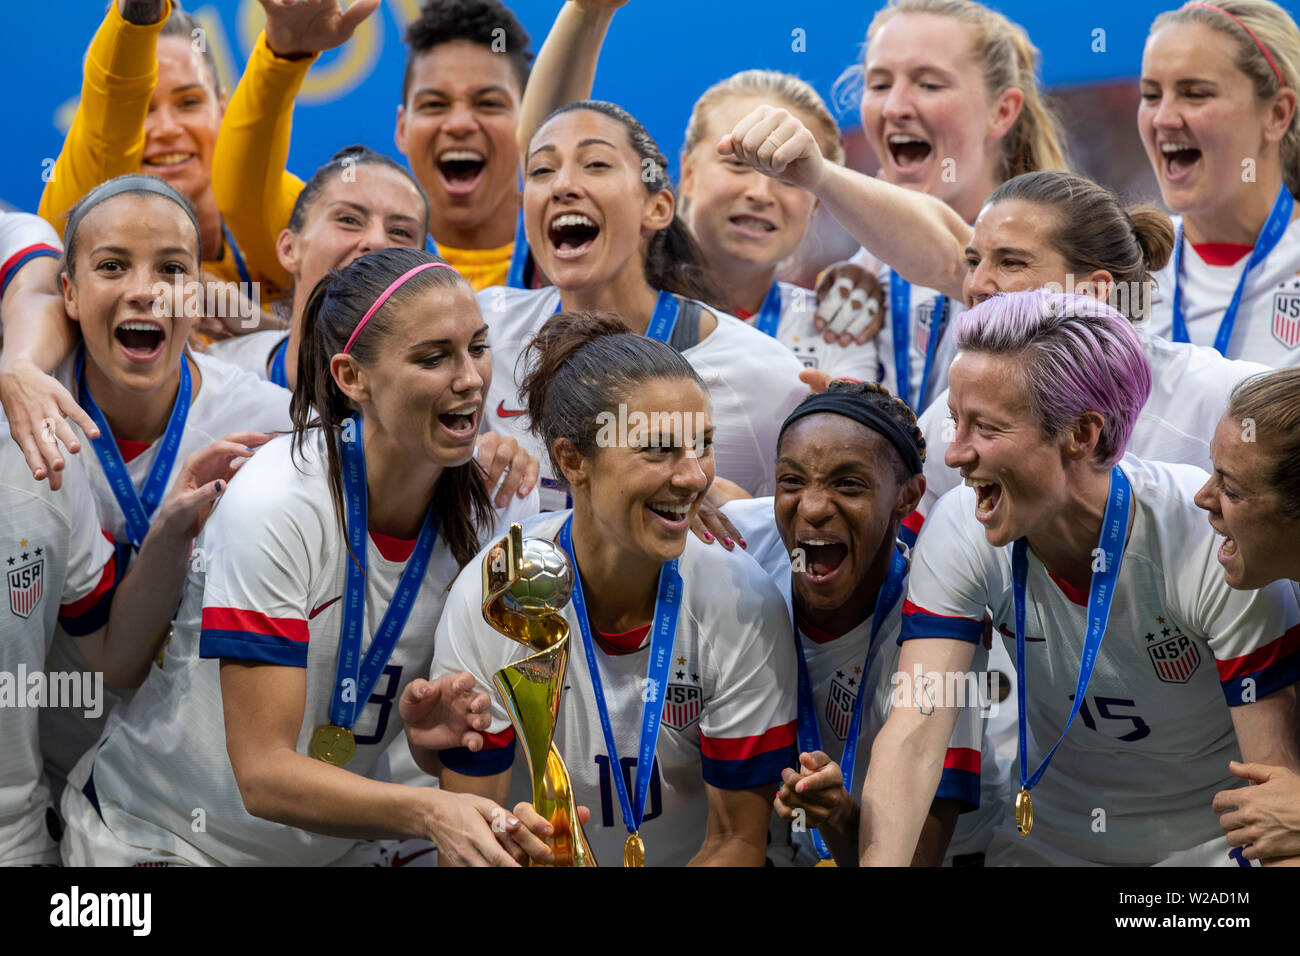 Lyon, France. 07th July, 2019. Megan Rapinoe, Carli Lloyd, Alex Morgan Crystal Dunn and United States sealing commemorates after the United States won the 2019 FIFA Women's Worup Cup Final against the Netherlands at the Lyon Stadium in Lyon, France. Credit: Foto Arena LTDA/Alamy Live News - Stock Image